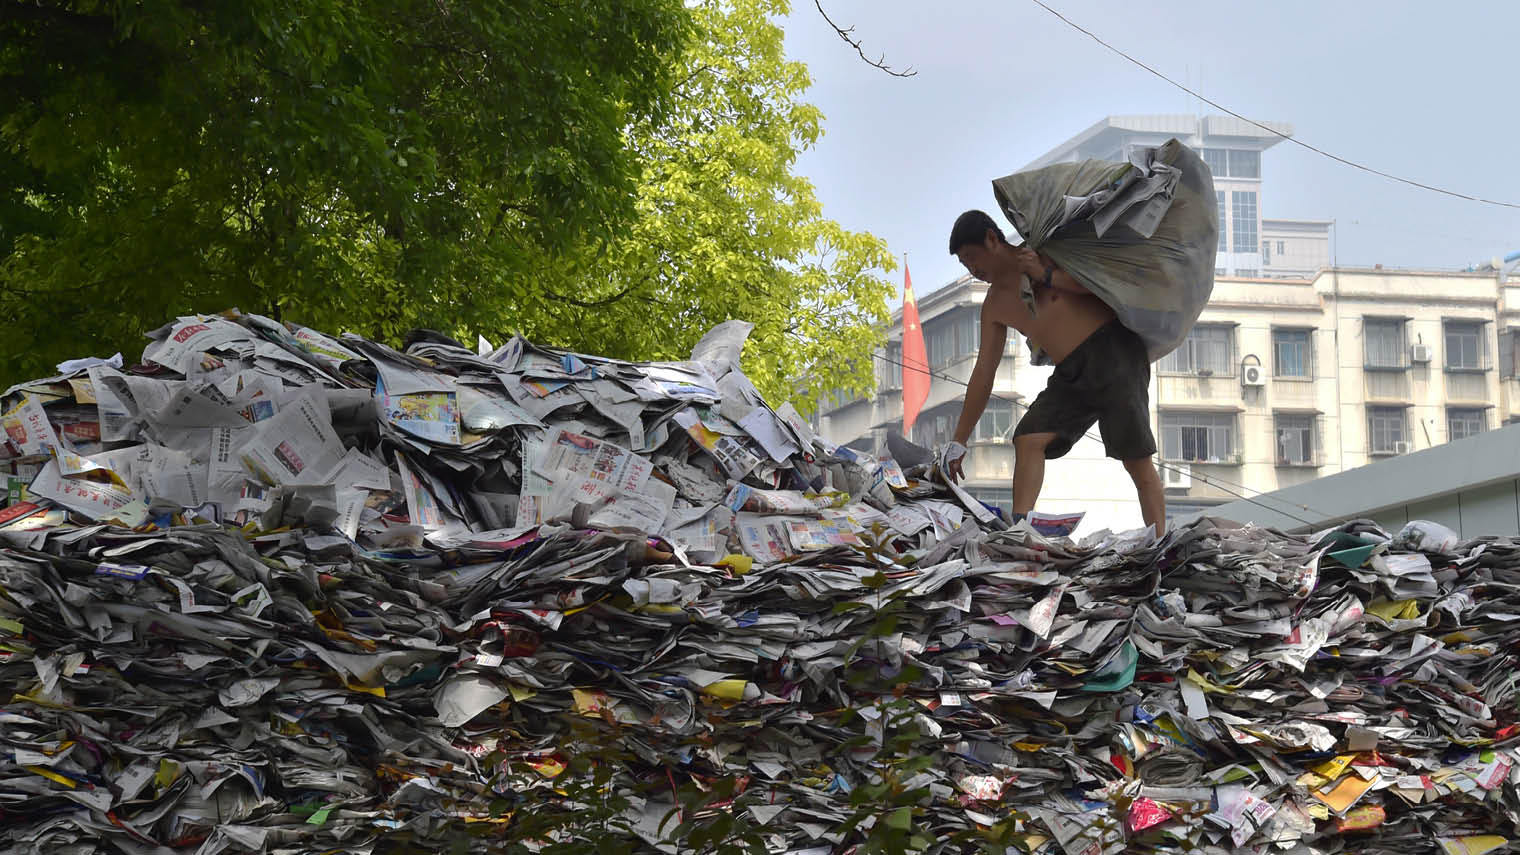 China is trying to clean up its image by tackling poor-quality and contaminated imported material for recycling